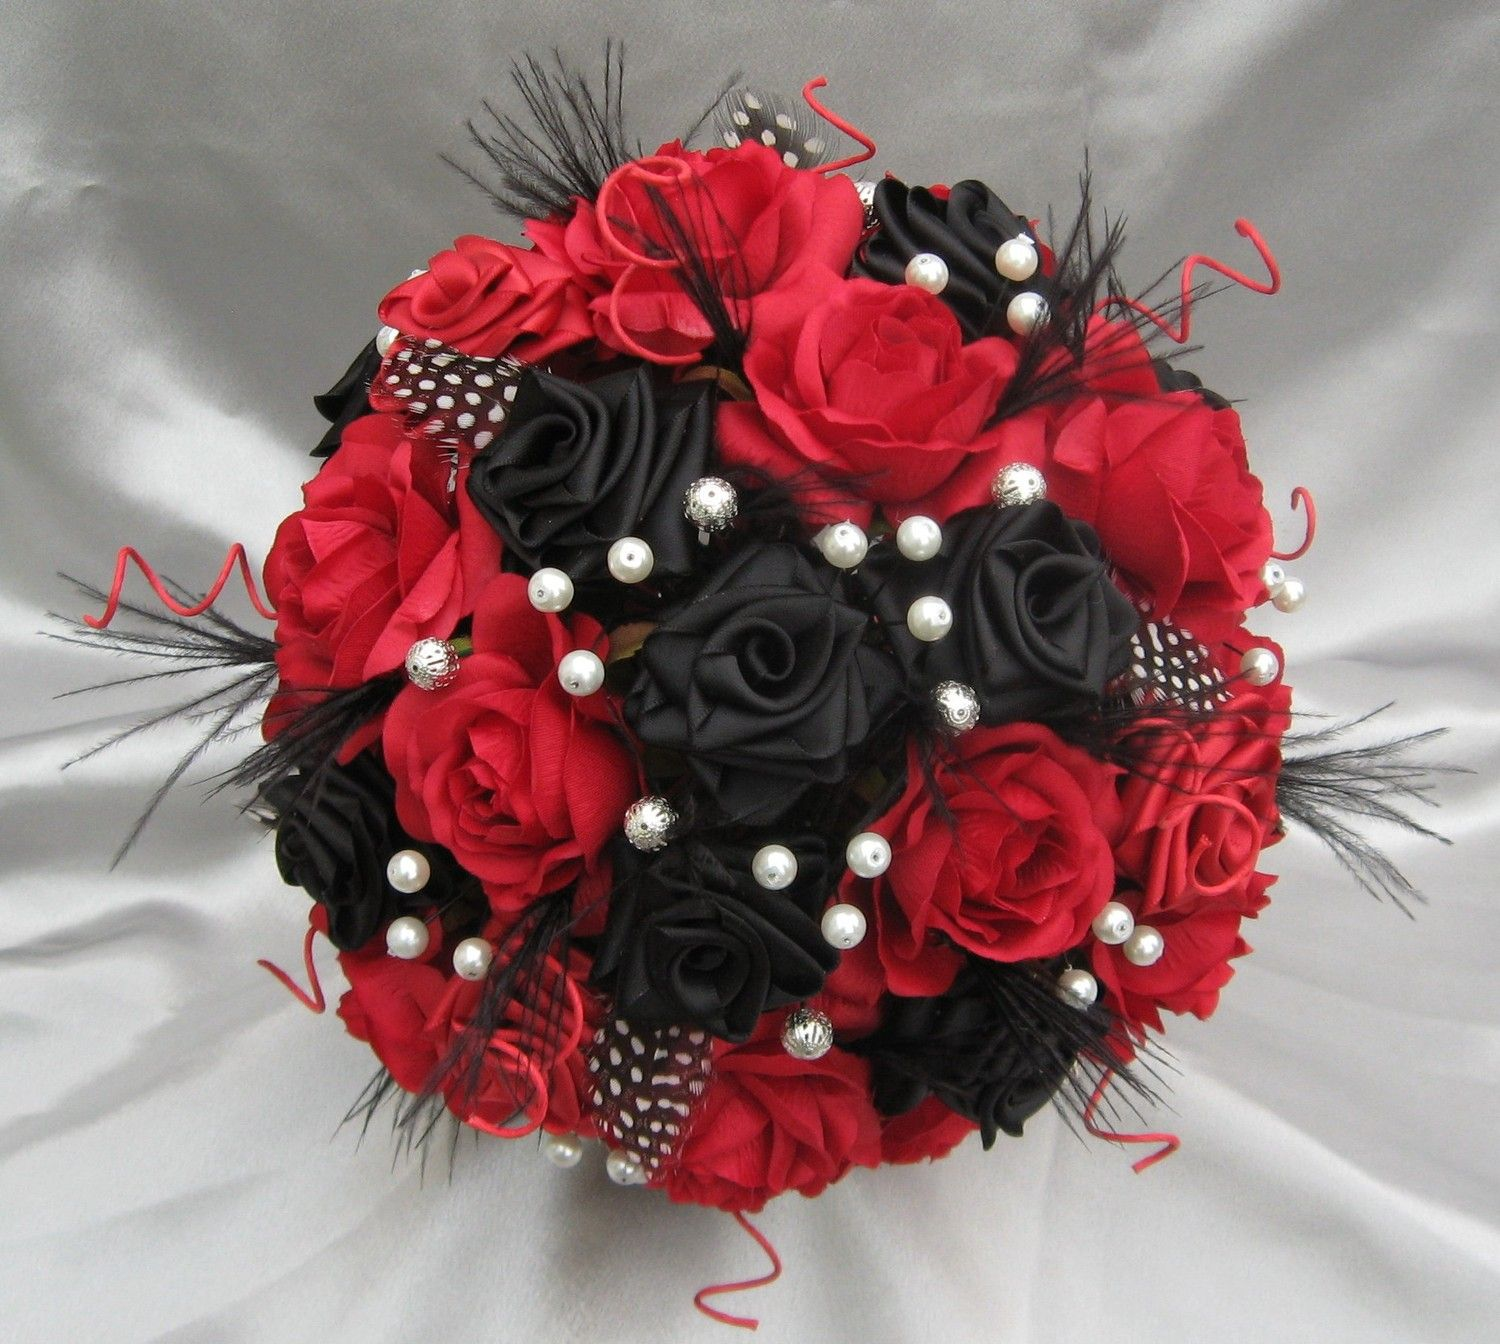 Harlequin black red and white luxury bridal bouquet bridal harlequin black red and white luxury bridal bouquet izmirmasajfo Choice Image